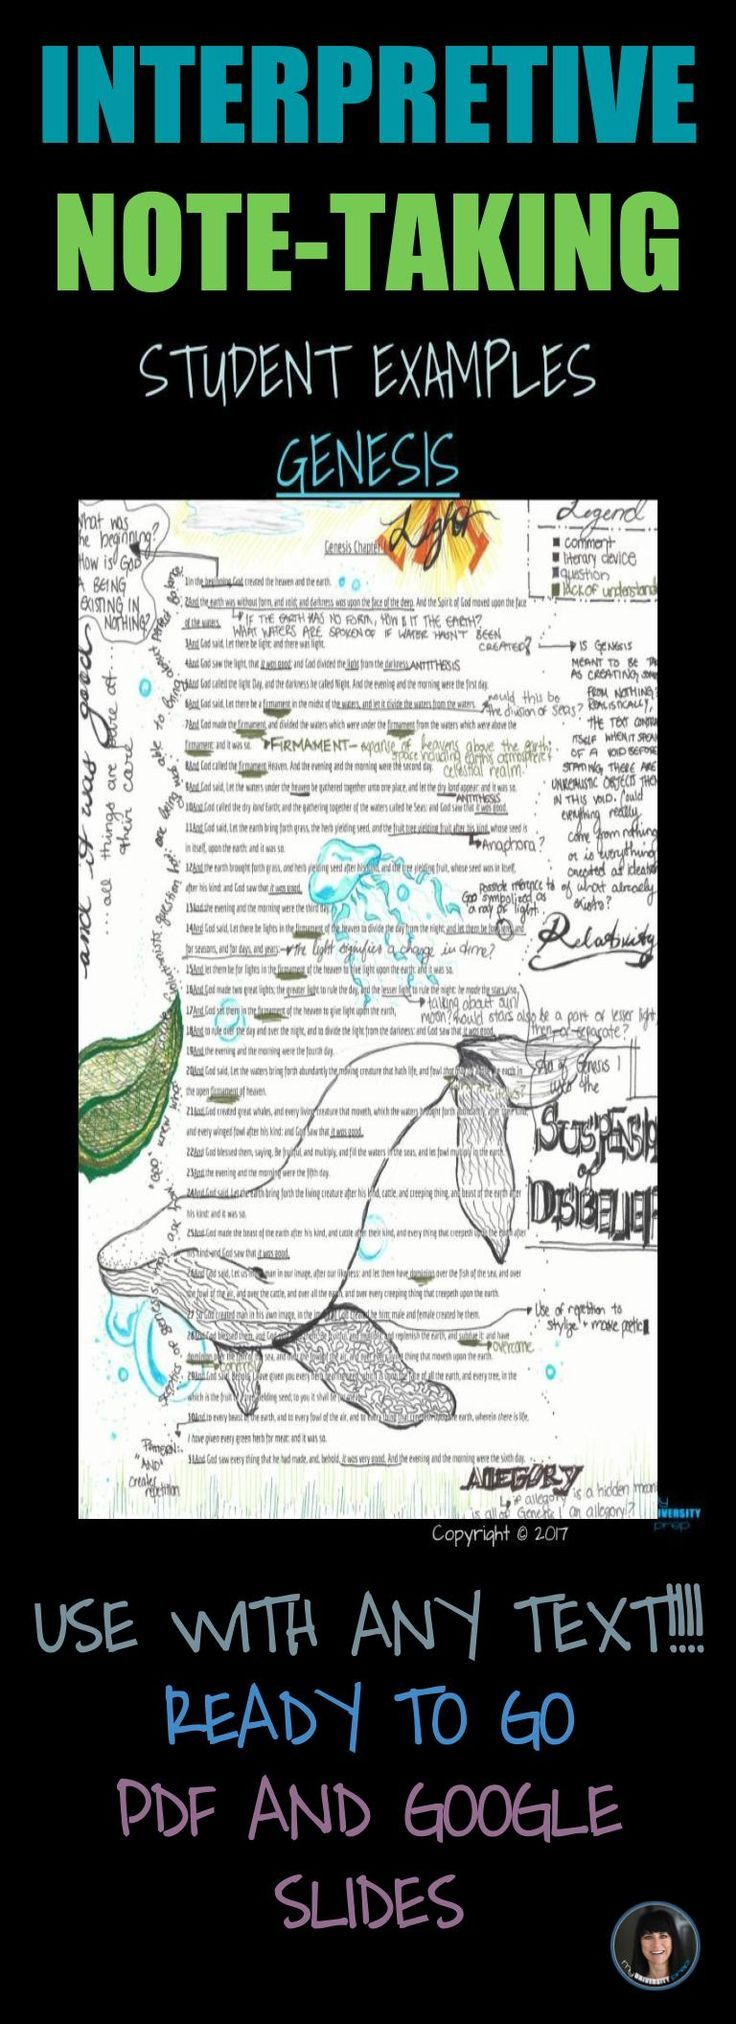 DON'T JUST ANNOTATE TRY INTERPRETIVE NOTE-TAKING FOR HIGH SCHOOL, COLLEGE, AND UNIVERSITY STUDENTS USE WITH ANY TEXT!!!! READY TO GO PDF AND GOOGLE SLIDES. Click to see more!